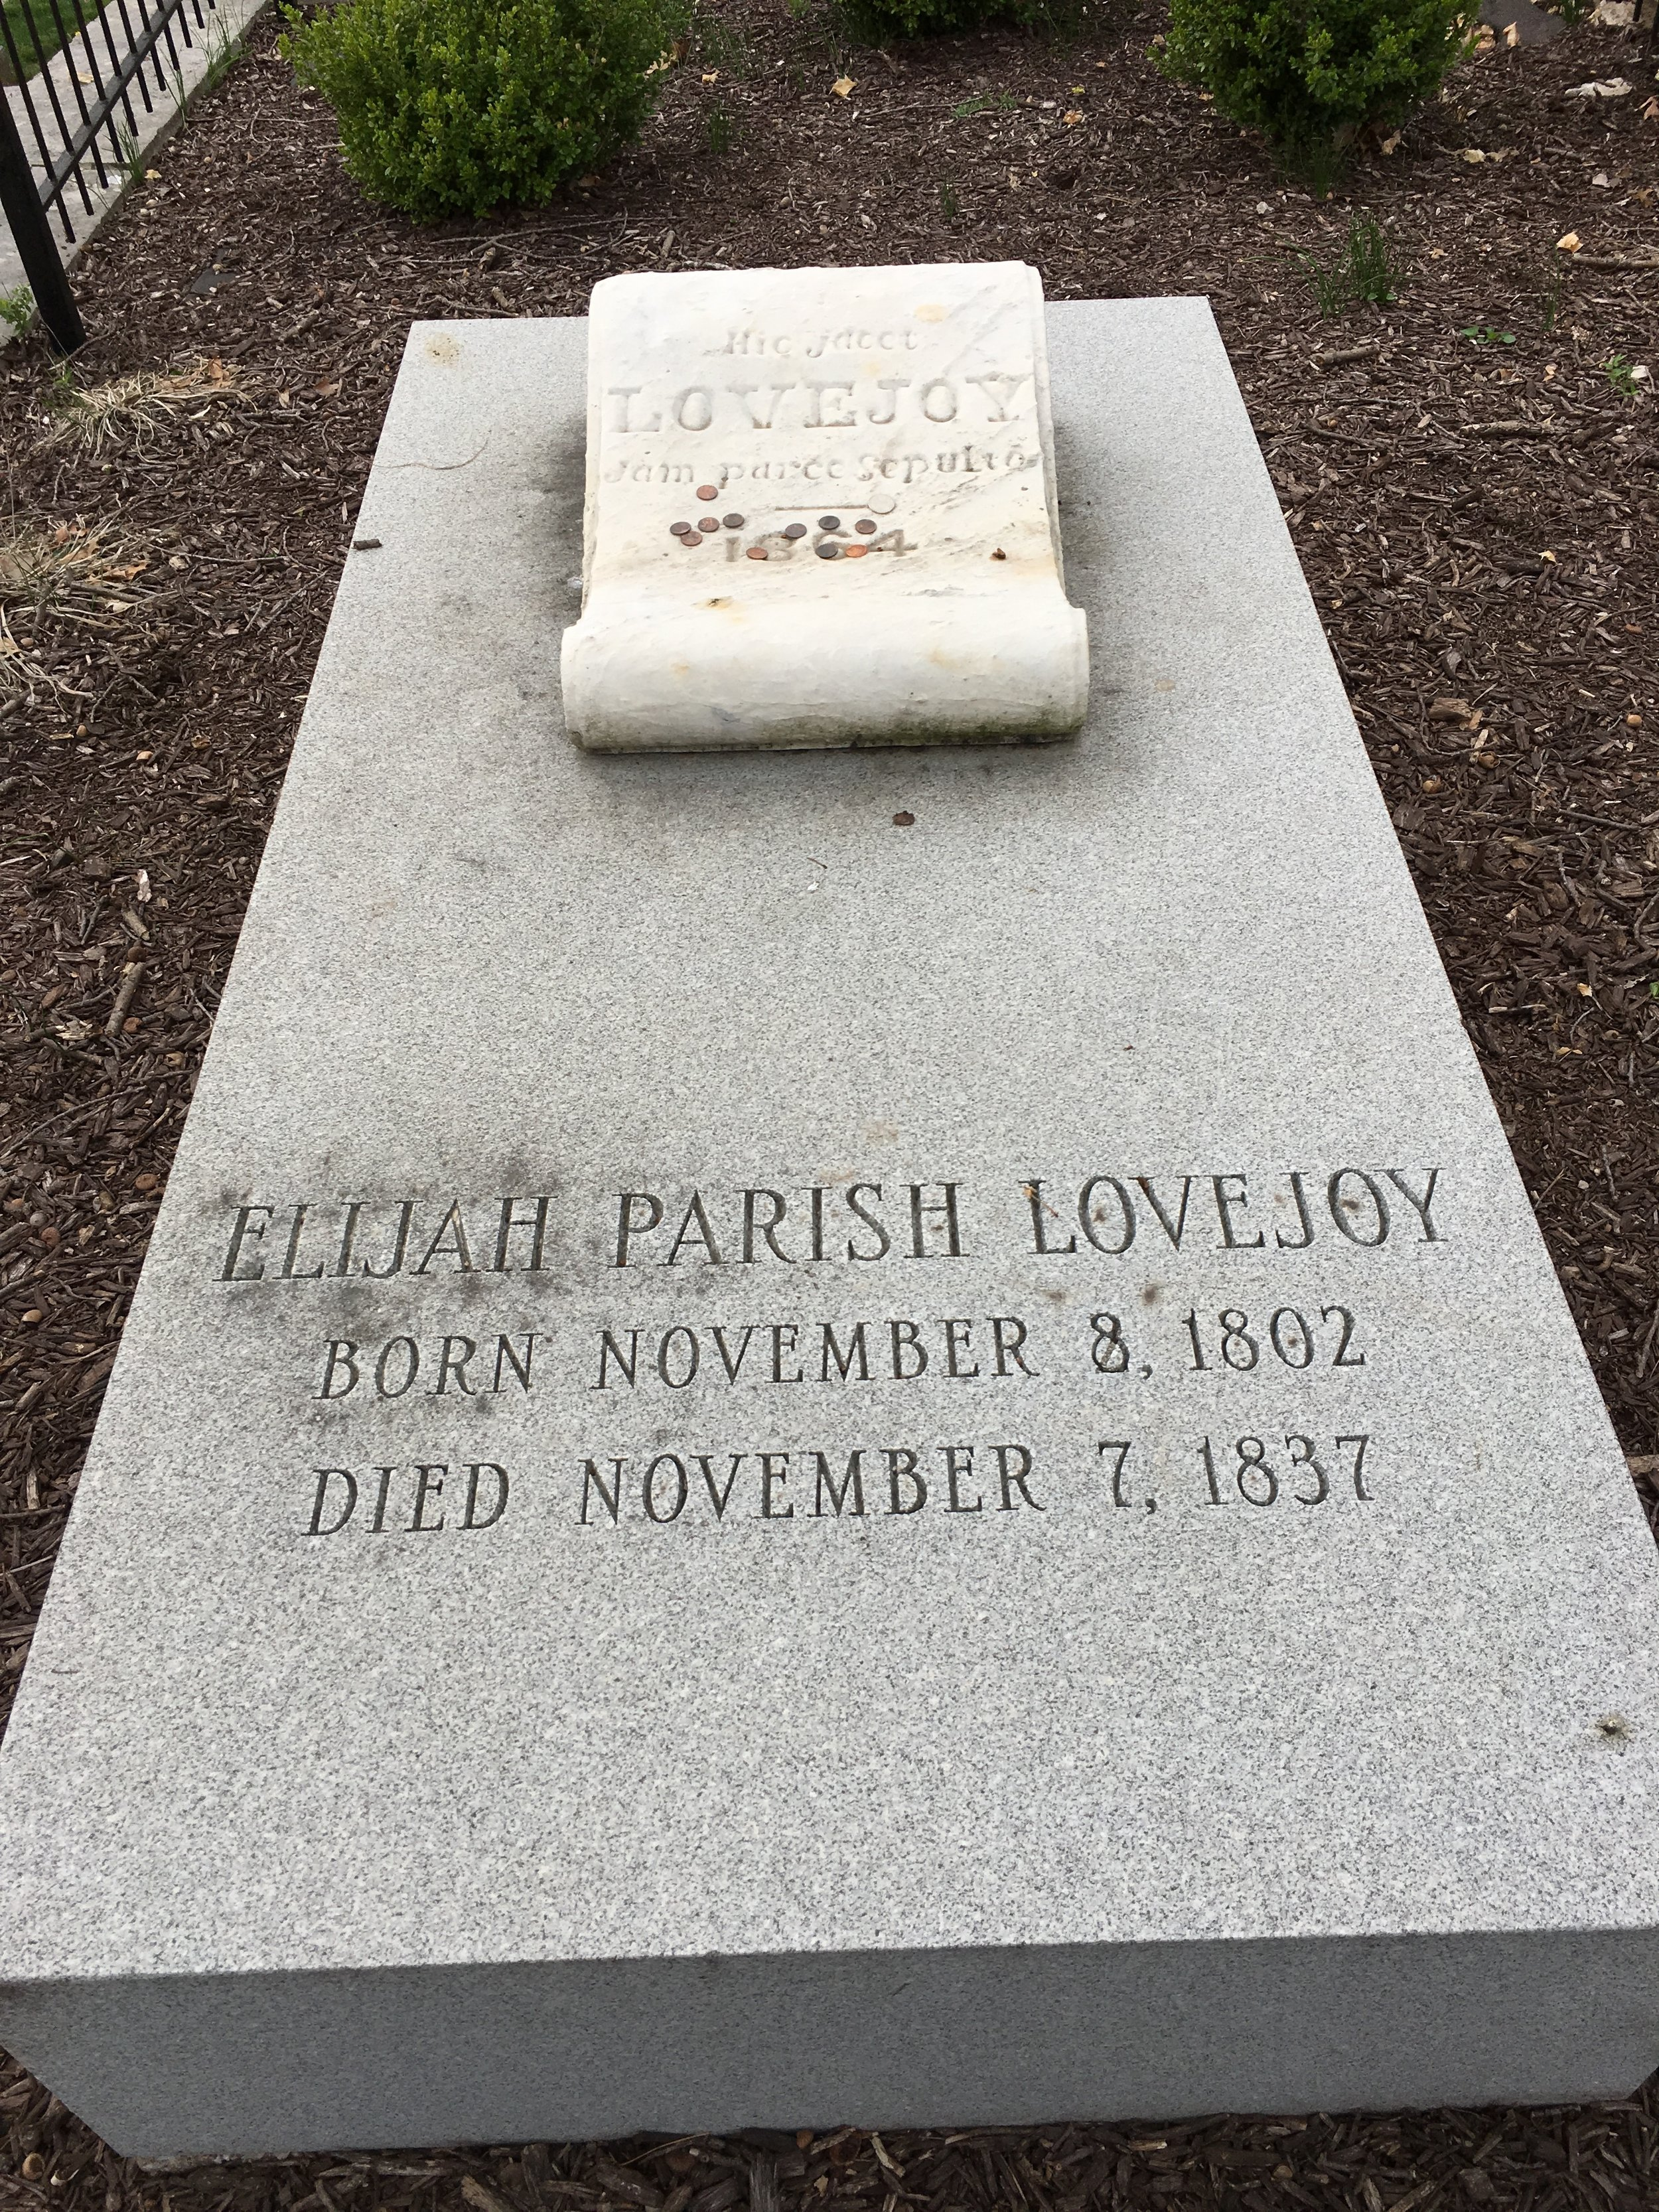 A grave marker near the monument to Elijah Parish Lovejoy in Alton, Ill.